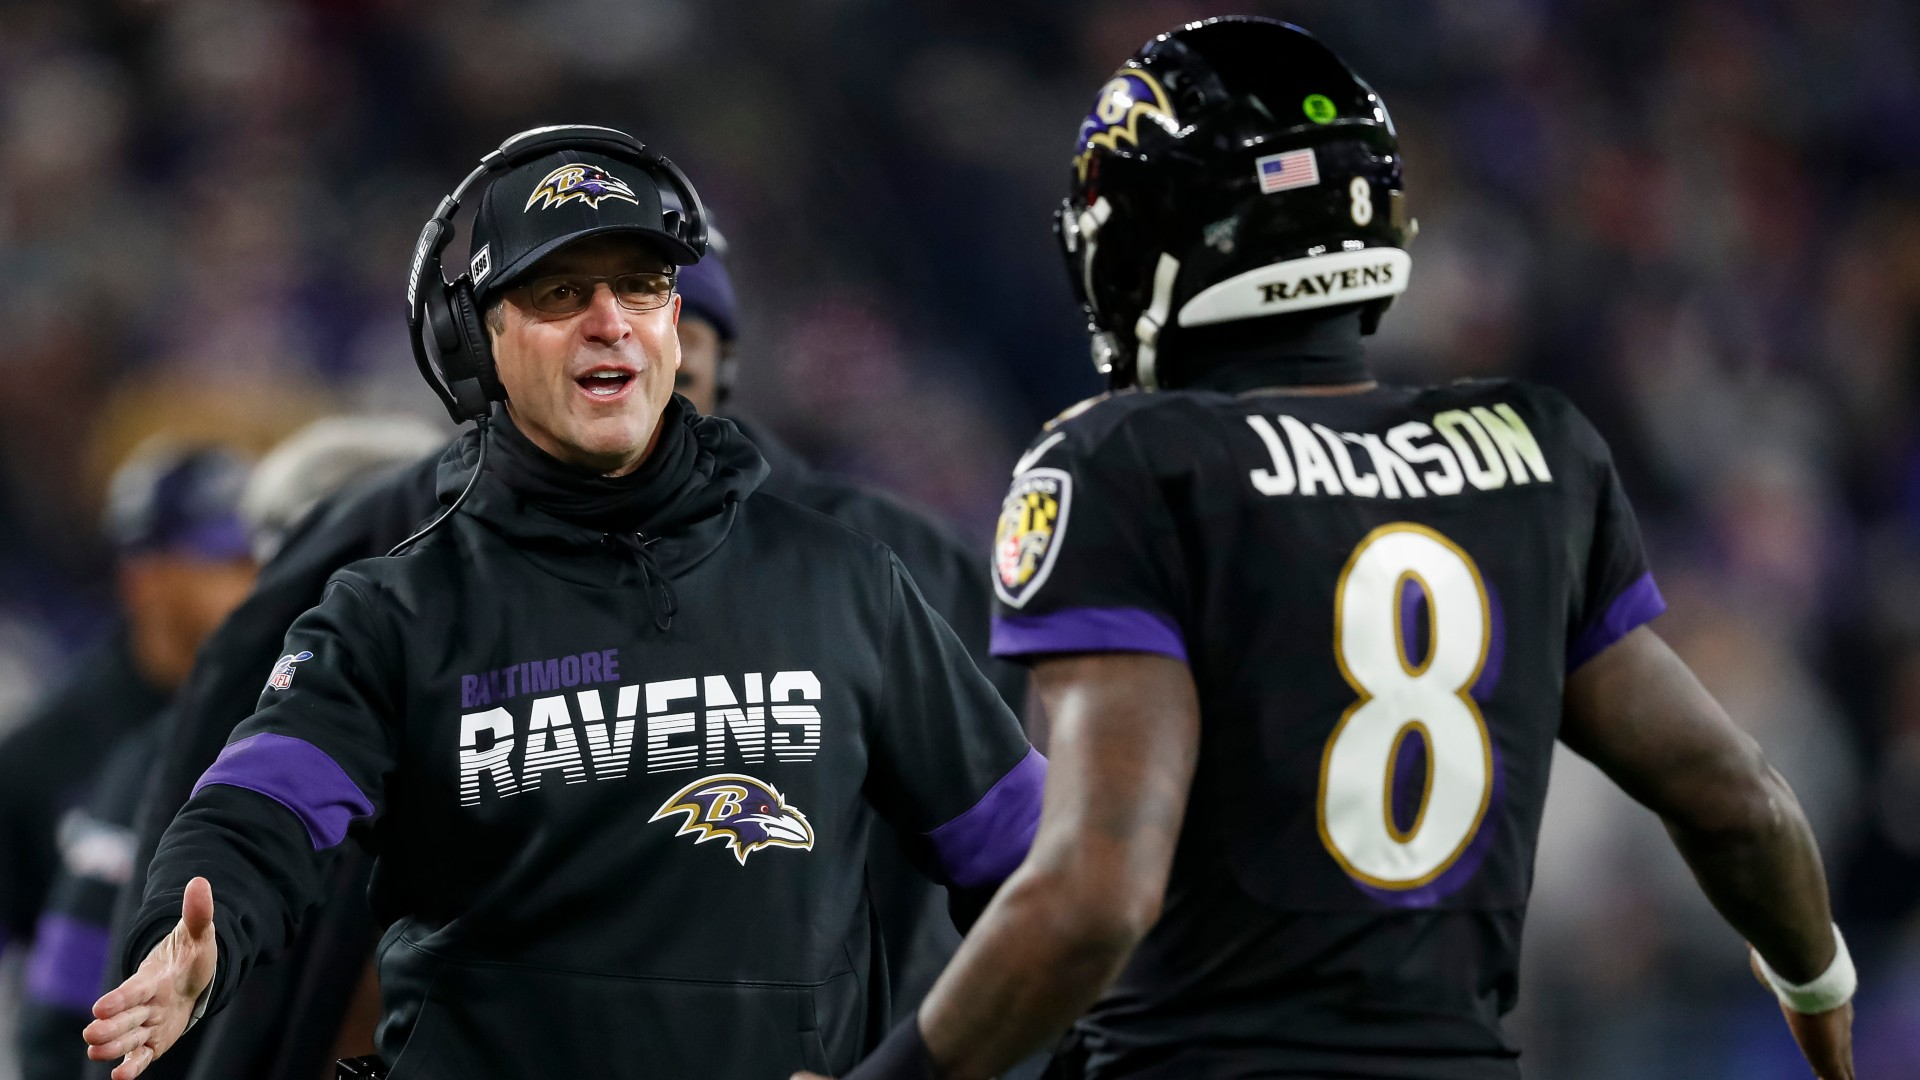 Ravens program 2021: days and times of 17 matches, schedule strength, final record announcement